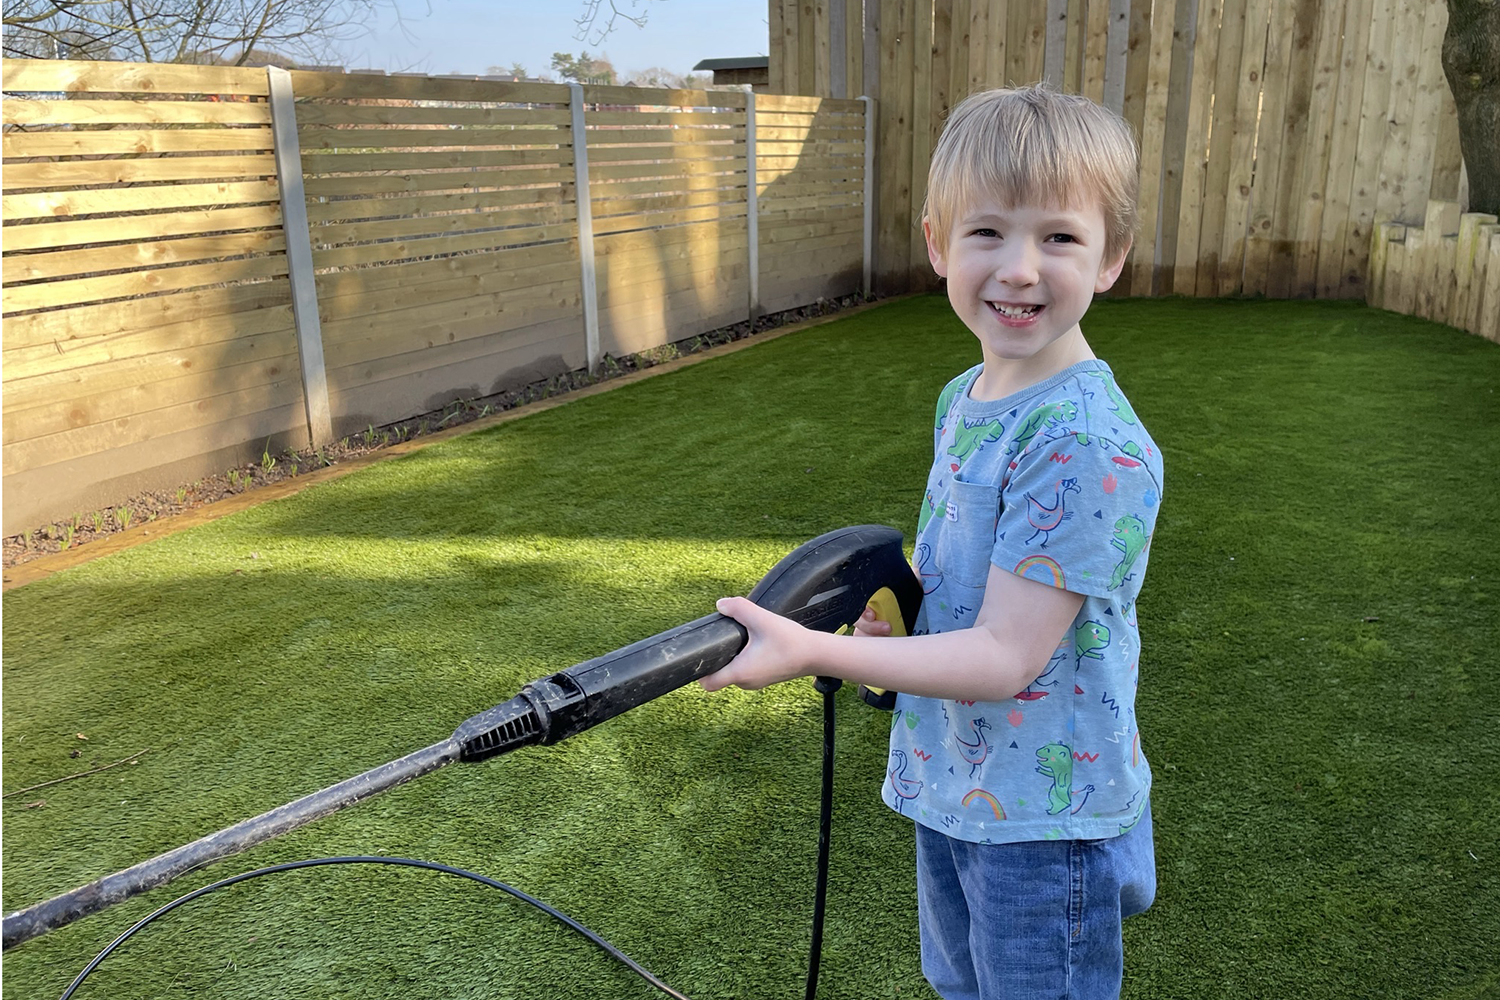 Gabe having a go with the pressure washer in the garden